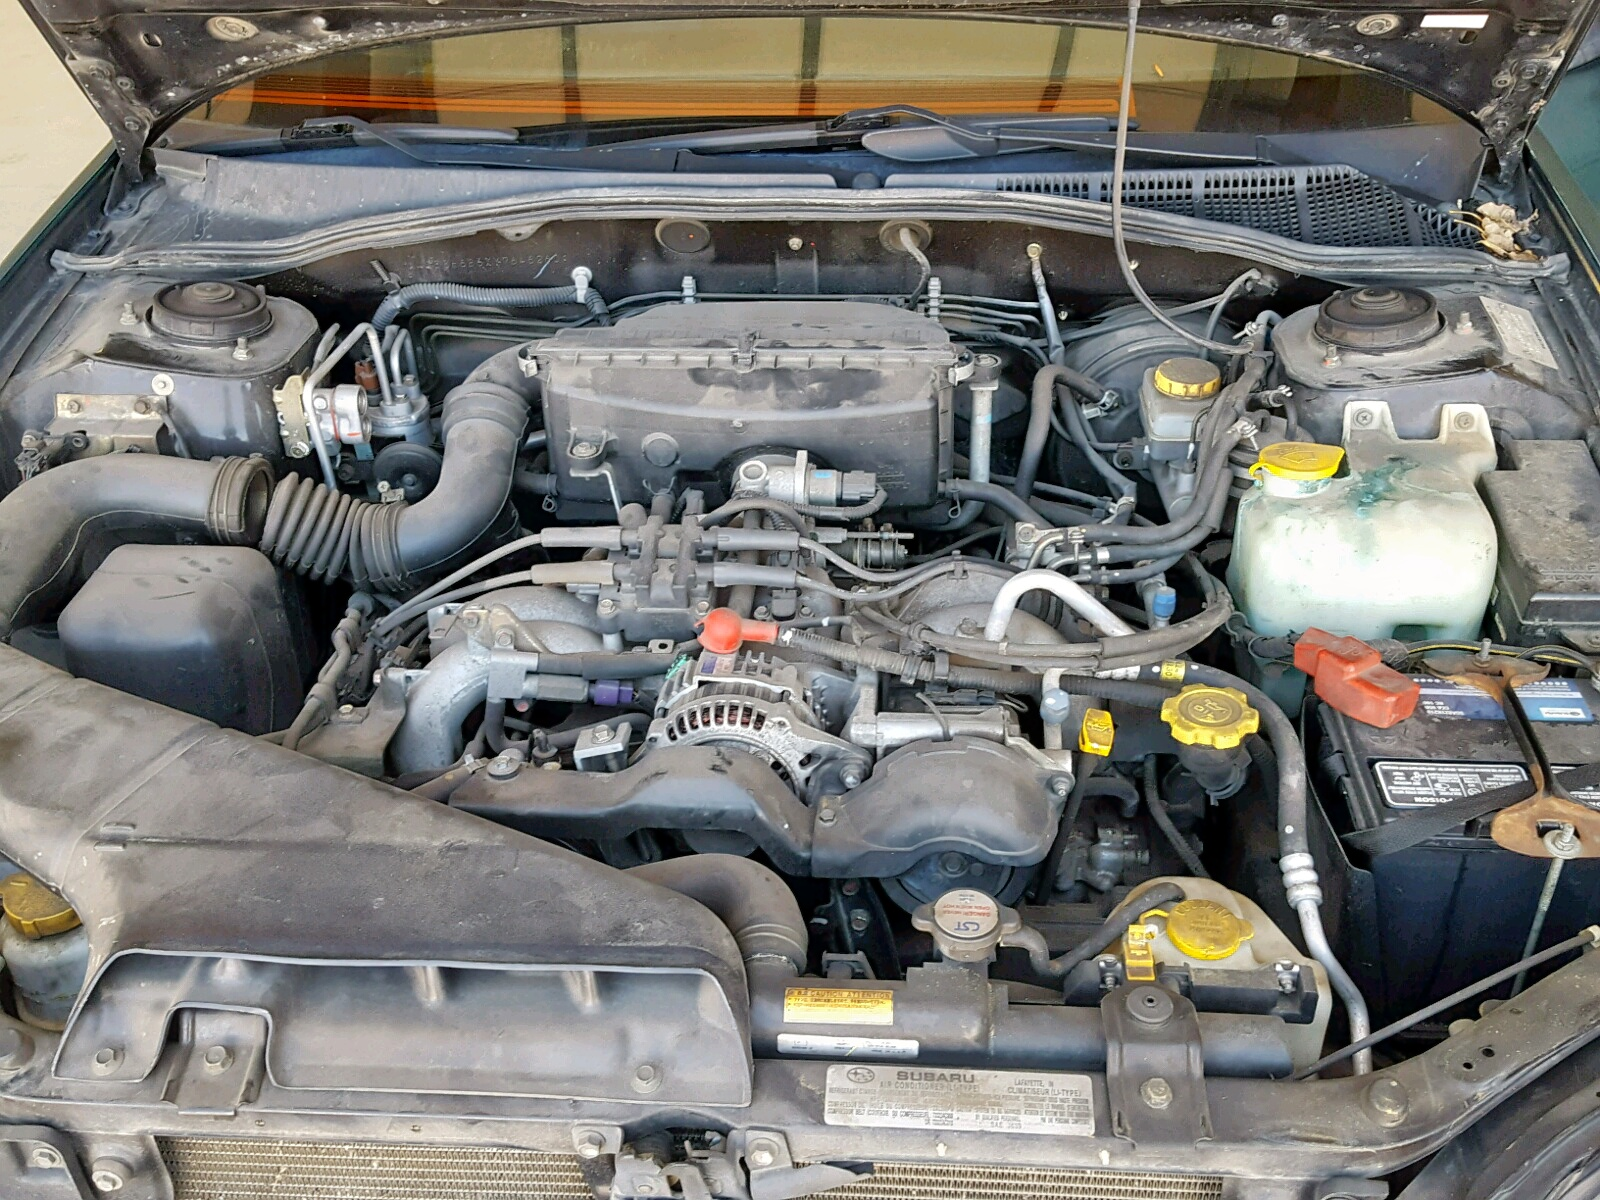 2000 Subaru Legacy Out 2 5L 4 in CO - Denver (4S3BH686XY7646260) for